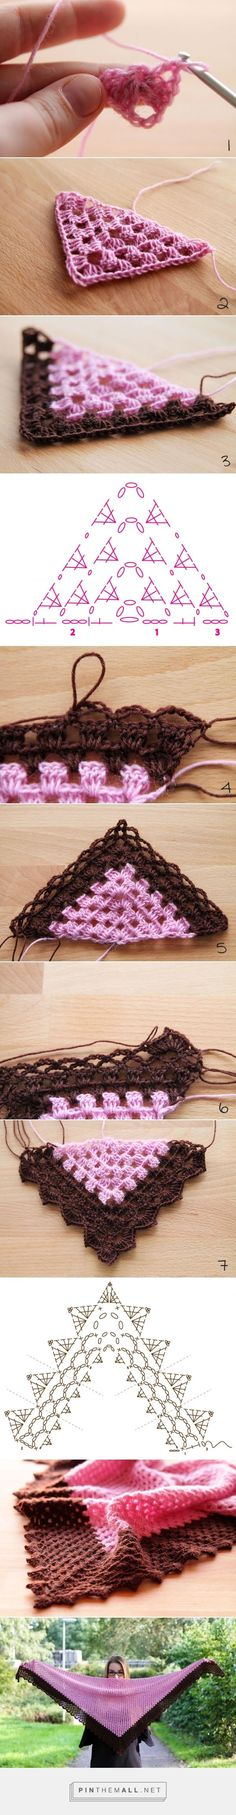 Pattern: Vintage Sweet Shawl (EN) - created via http://pinthemall.net, #crochet, free chart and turorial, #haken, omslagdoek, gratis schema en tutorial, mooie rand